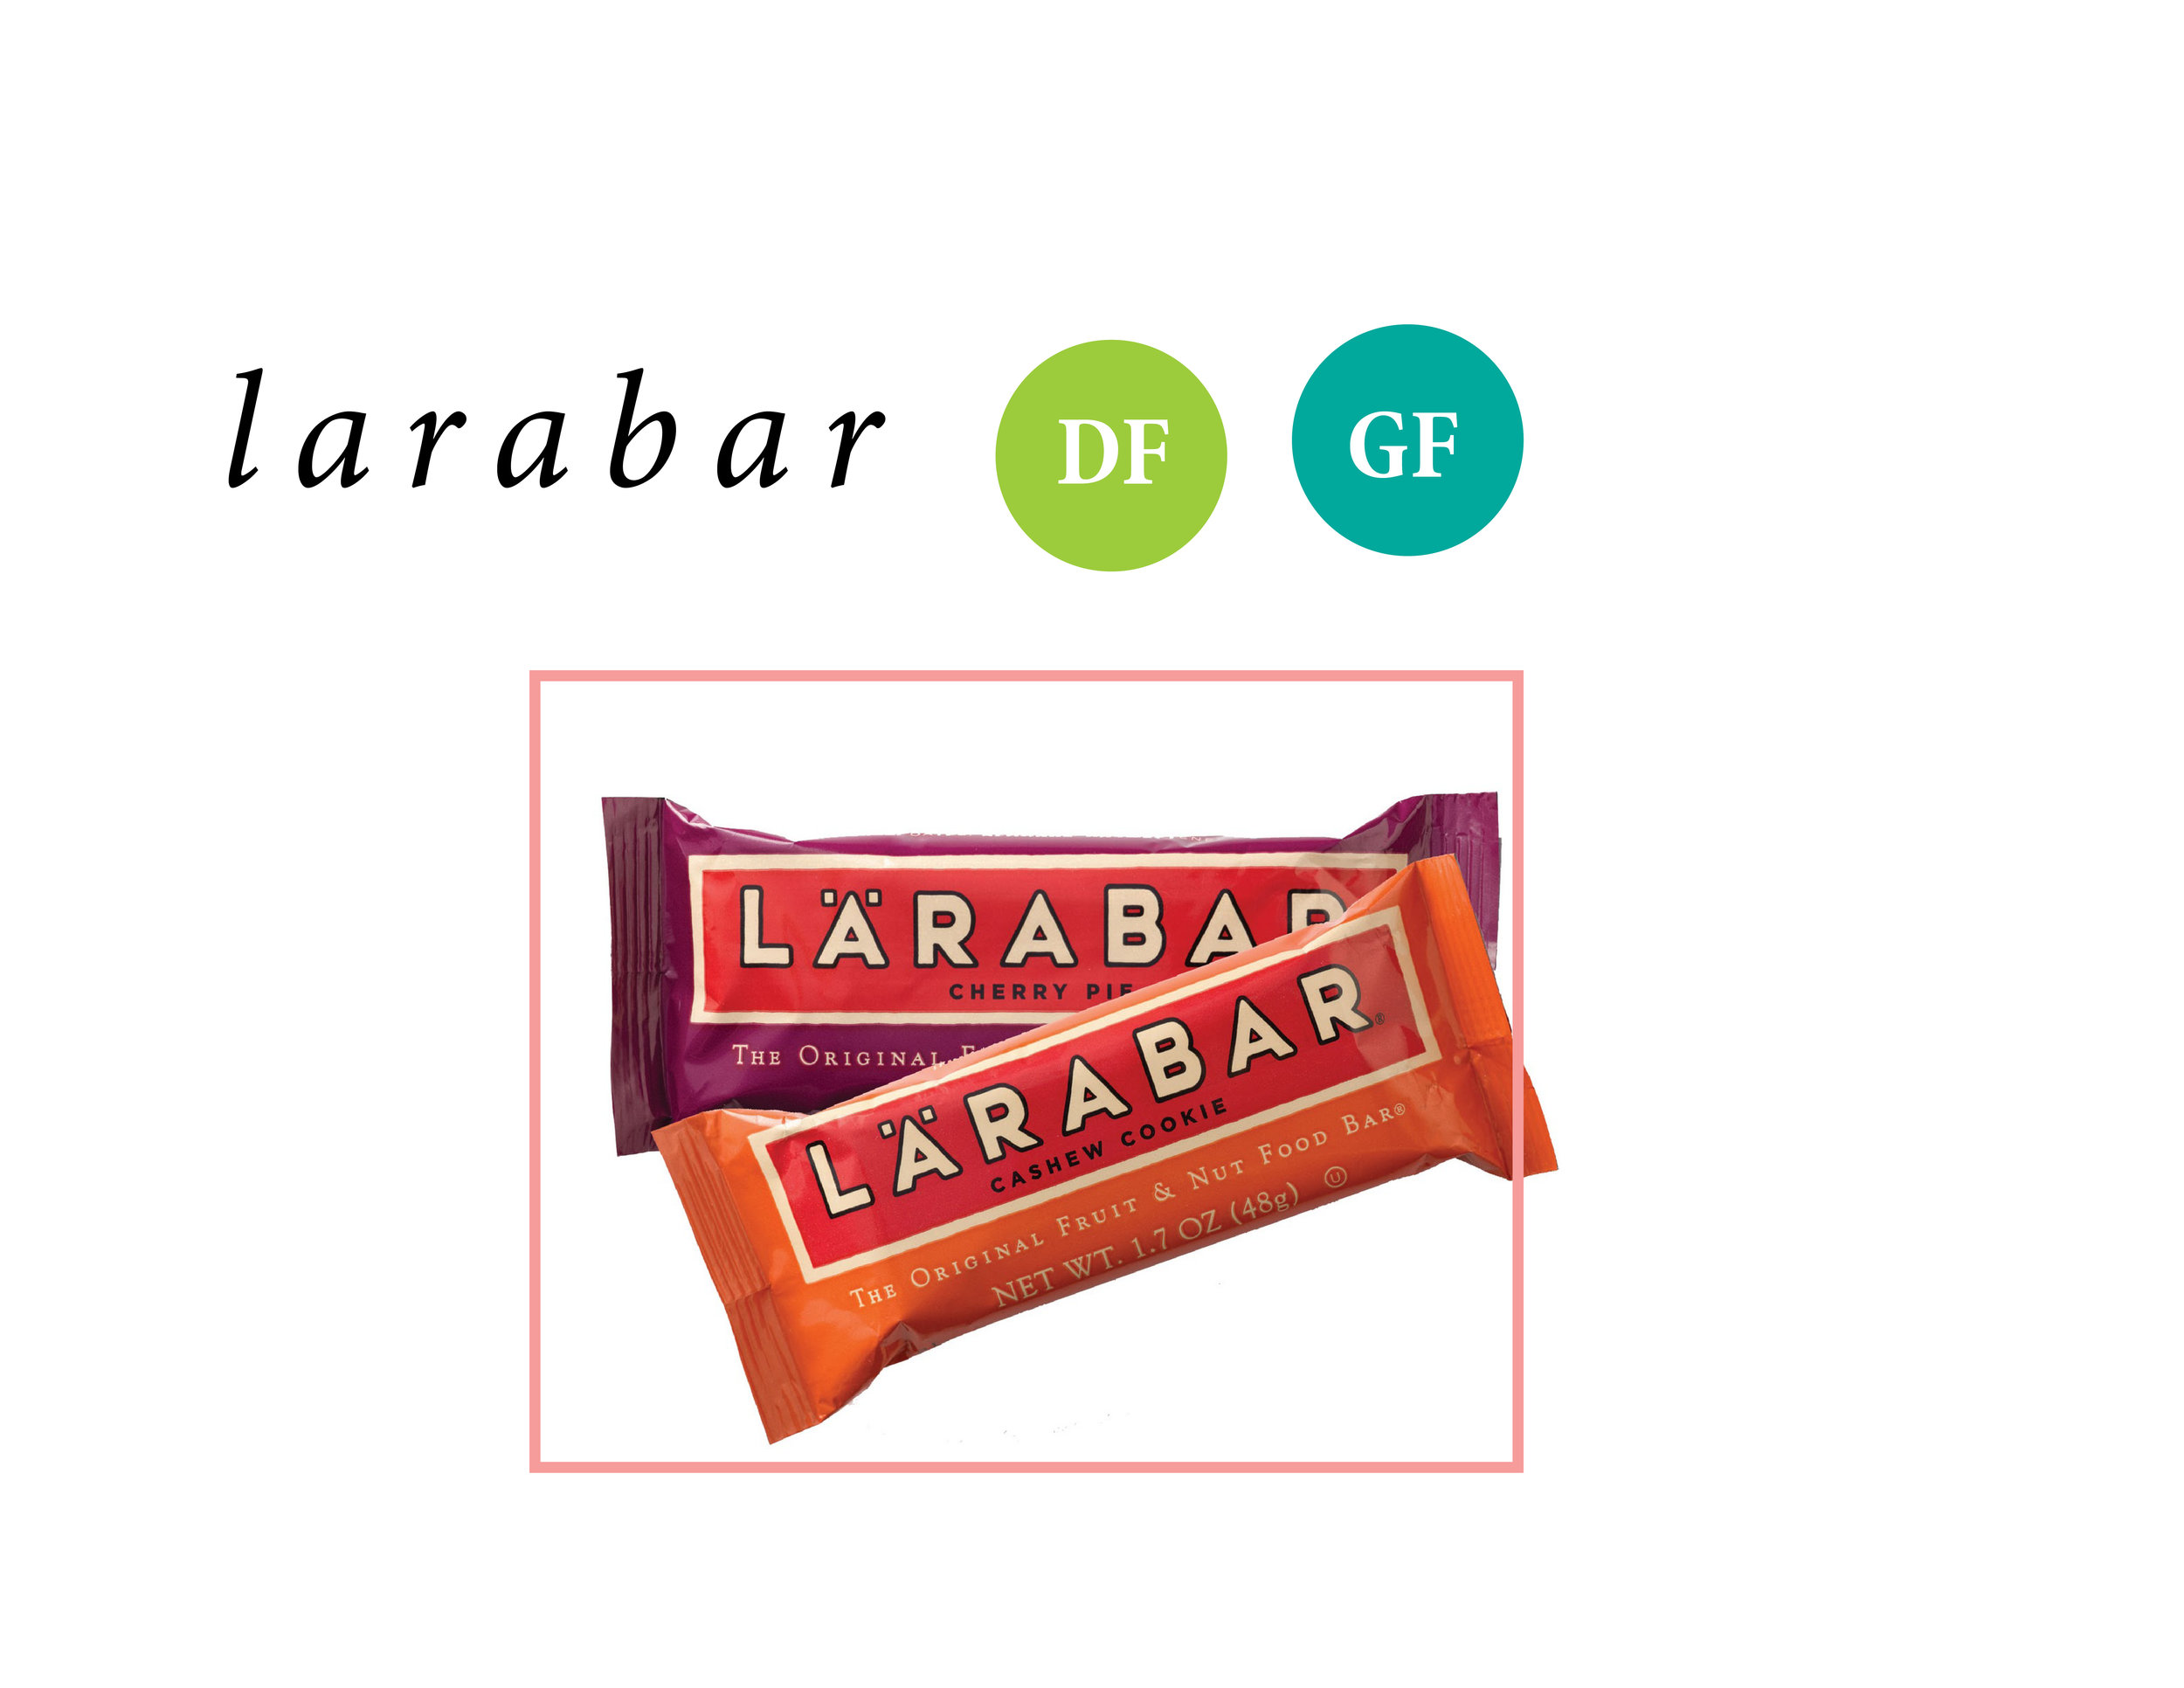 I'm obsessed with Lara Bars. They keep me full for a long time, they're made with fruits and nuts and granola and are totally fun because of all of the flavors they offer! They have anything from Key Lime Pie, Apple Pie, Chocolate Chip Cookie Dough and lots lots more. You can even order a variety pack to try them all!